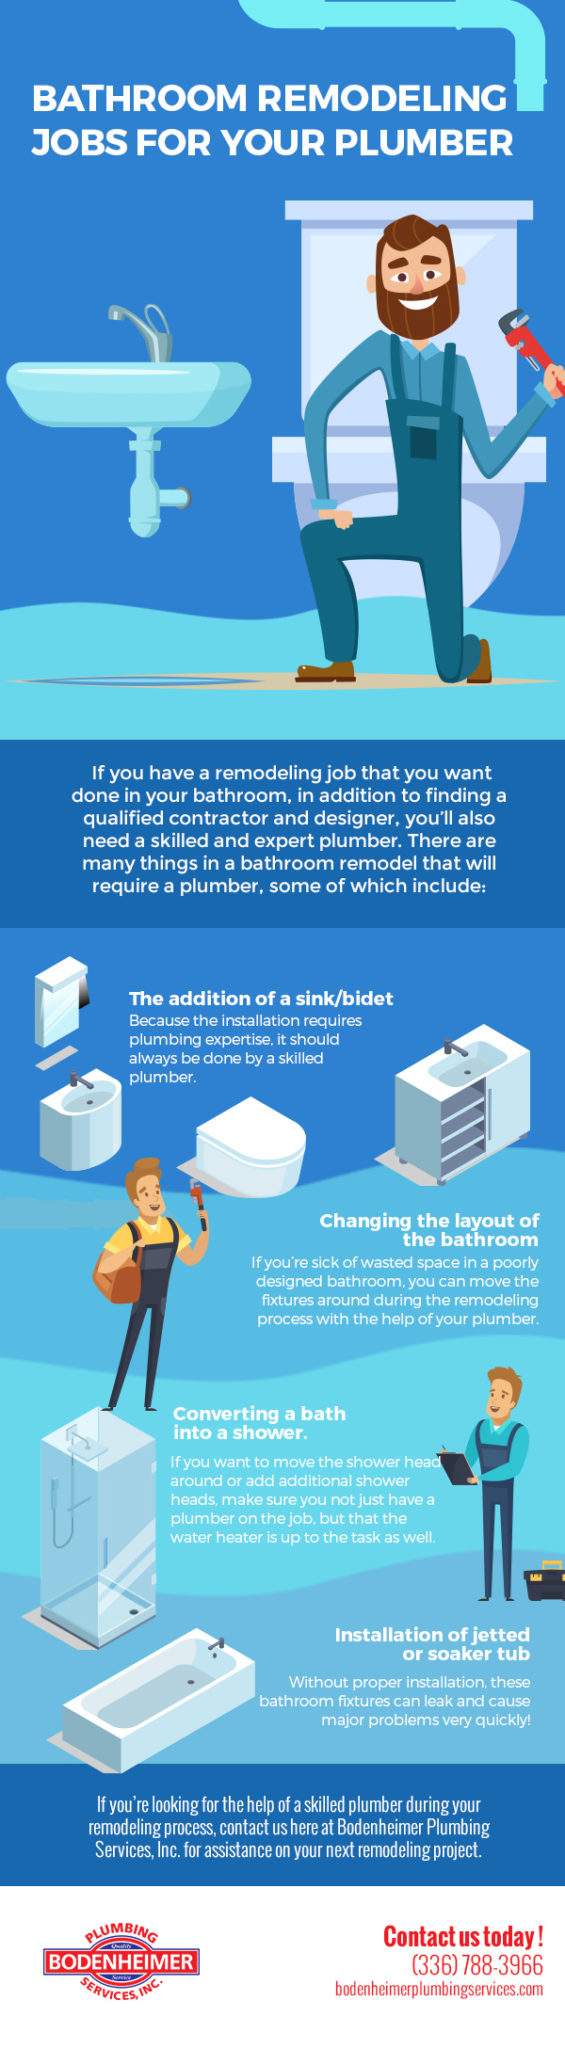 Bathroom Remodeling Jobs for Your Plumber Infographic